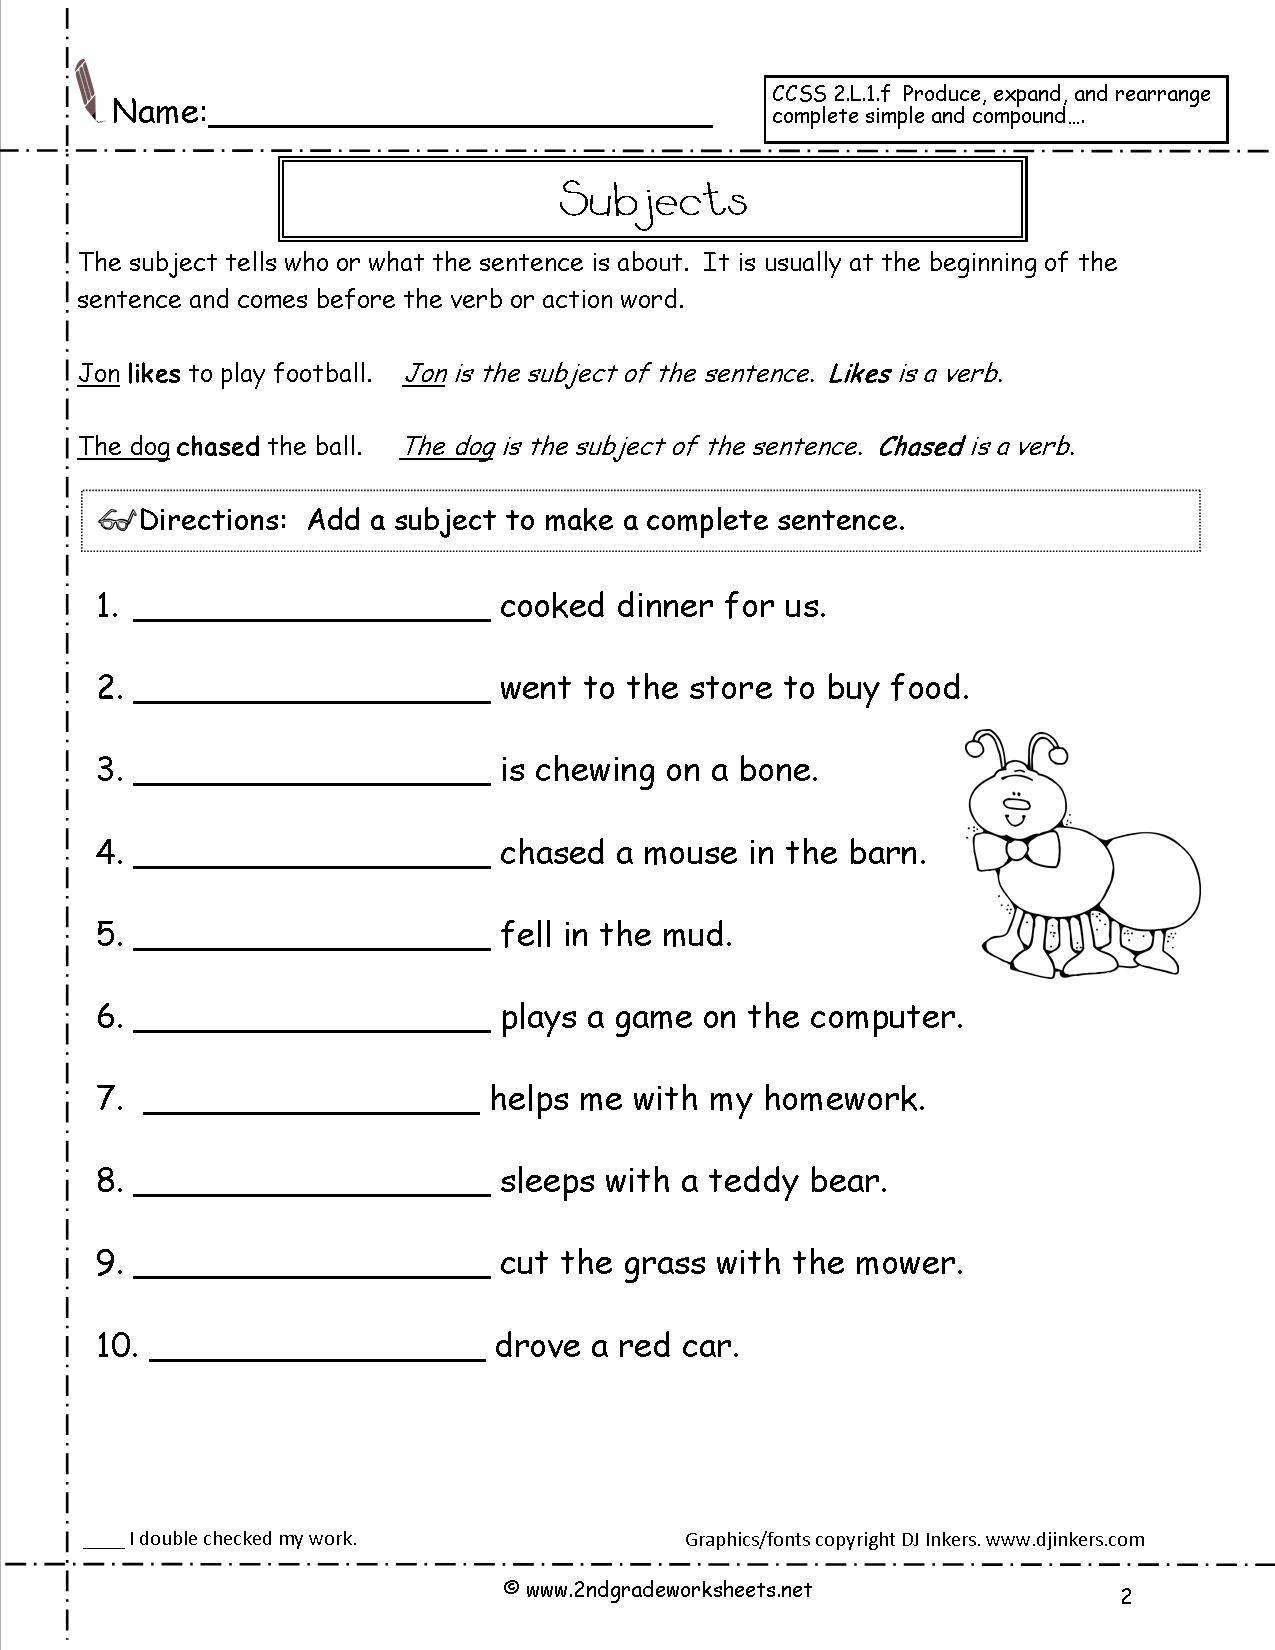 3rd Grade Editing Worksheets Basic Math Words Printable Cursive Worksheets 3rd Grade